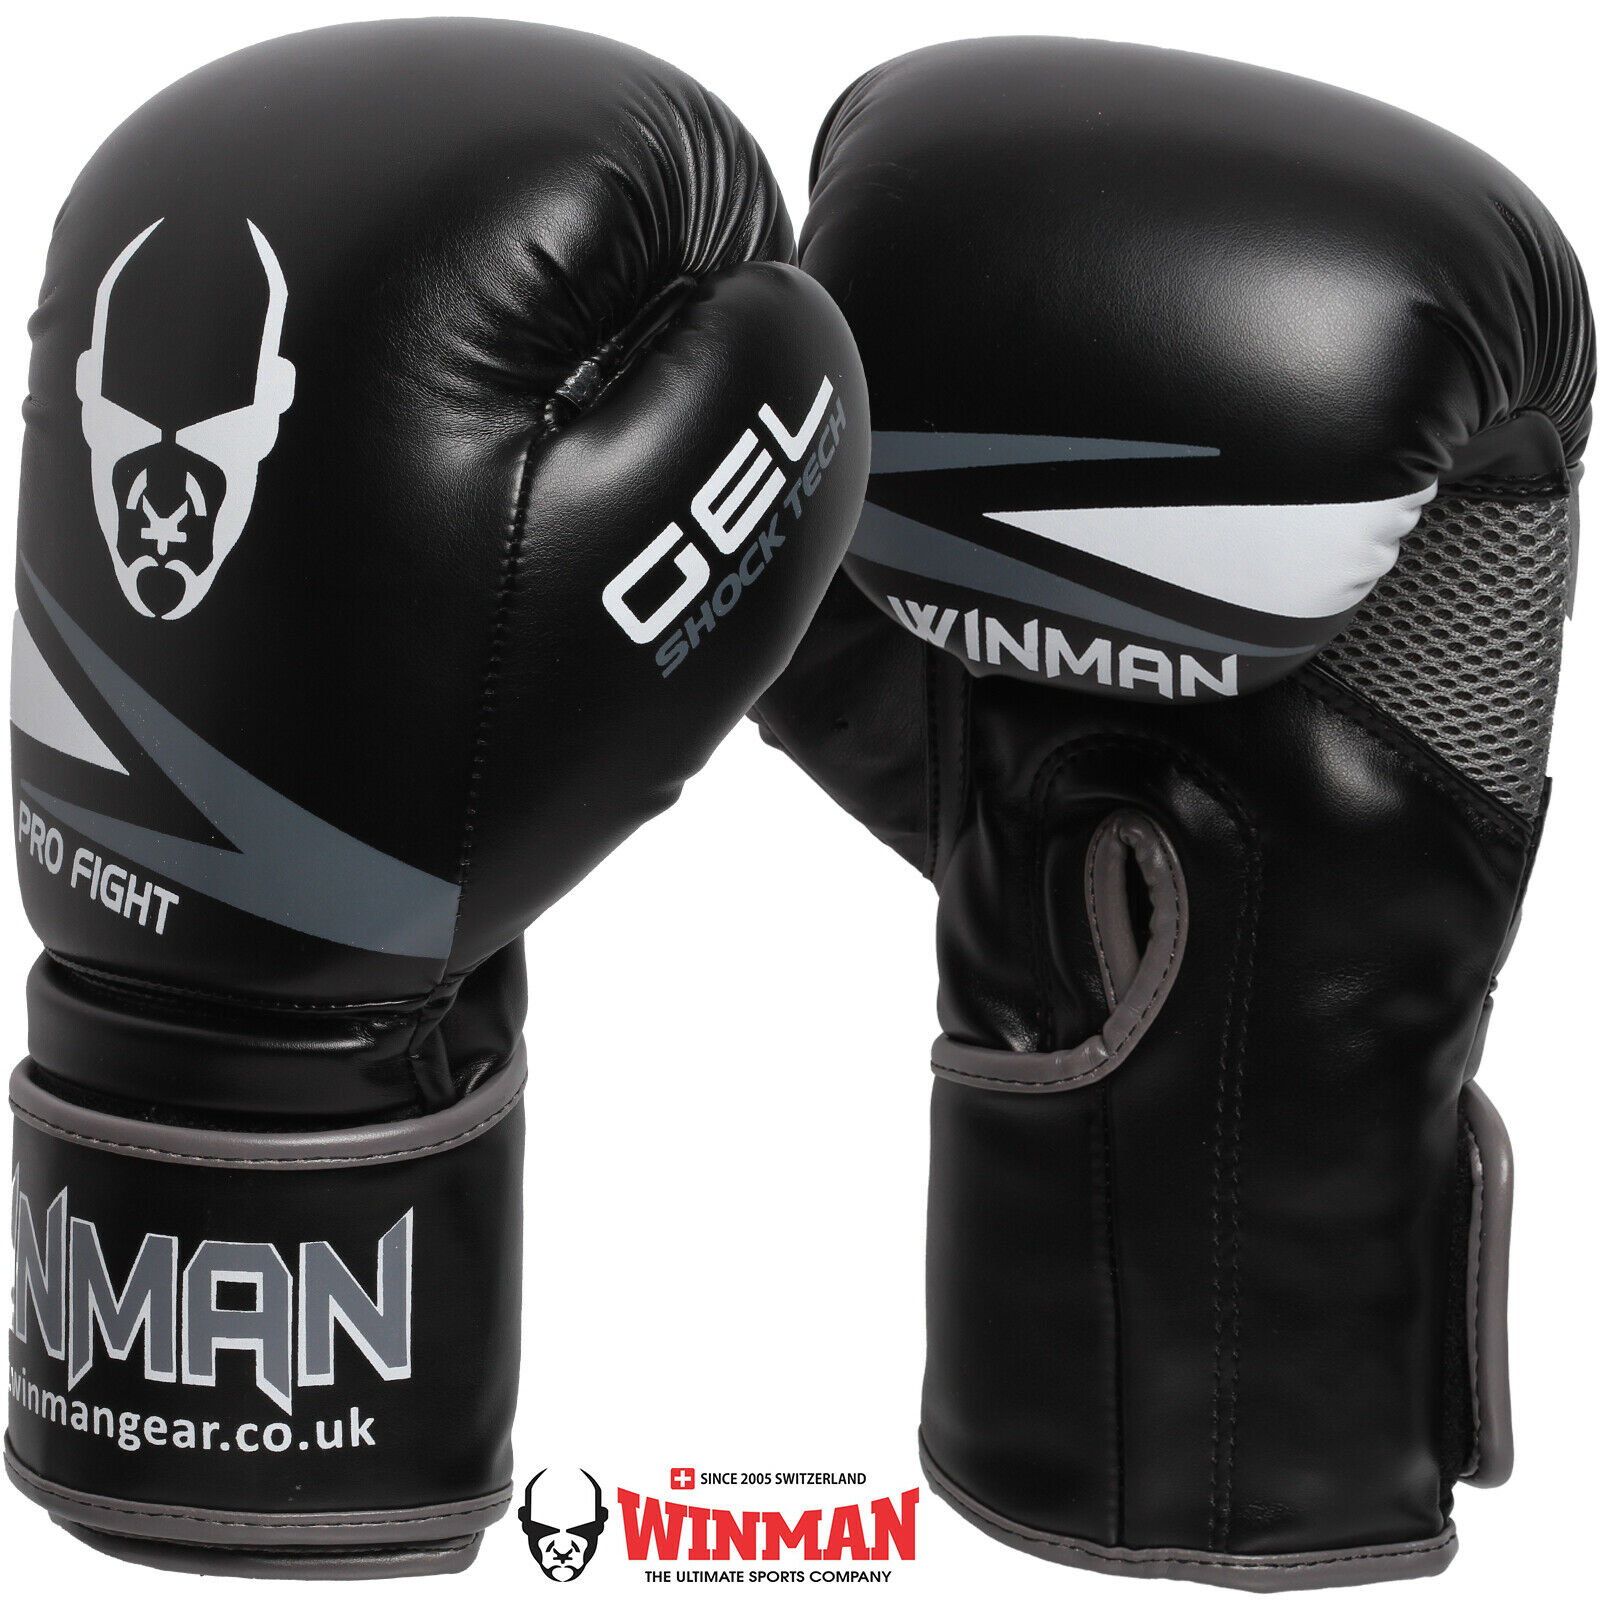 Boxing Gloves Sparring Bag Glove Punch Training Mitts 6 OZ 8 OZ 10 OZ 12 OZ 14